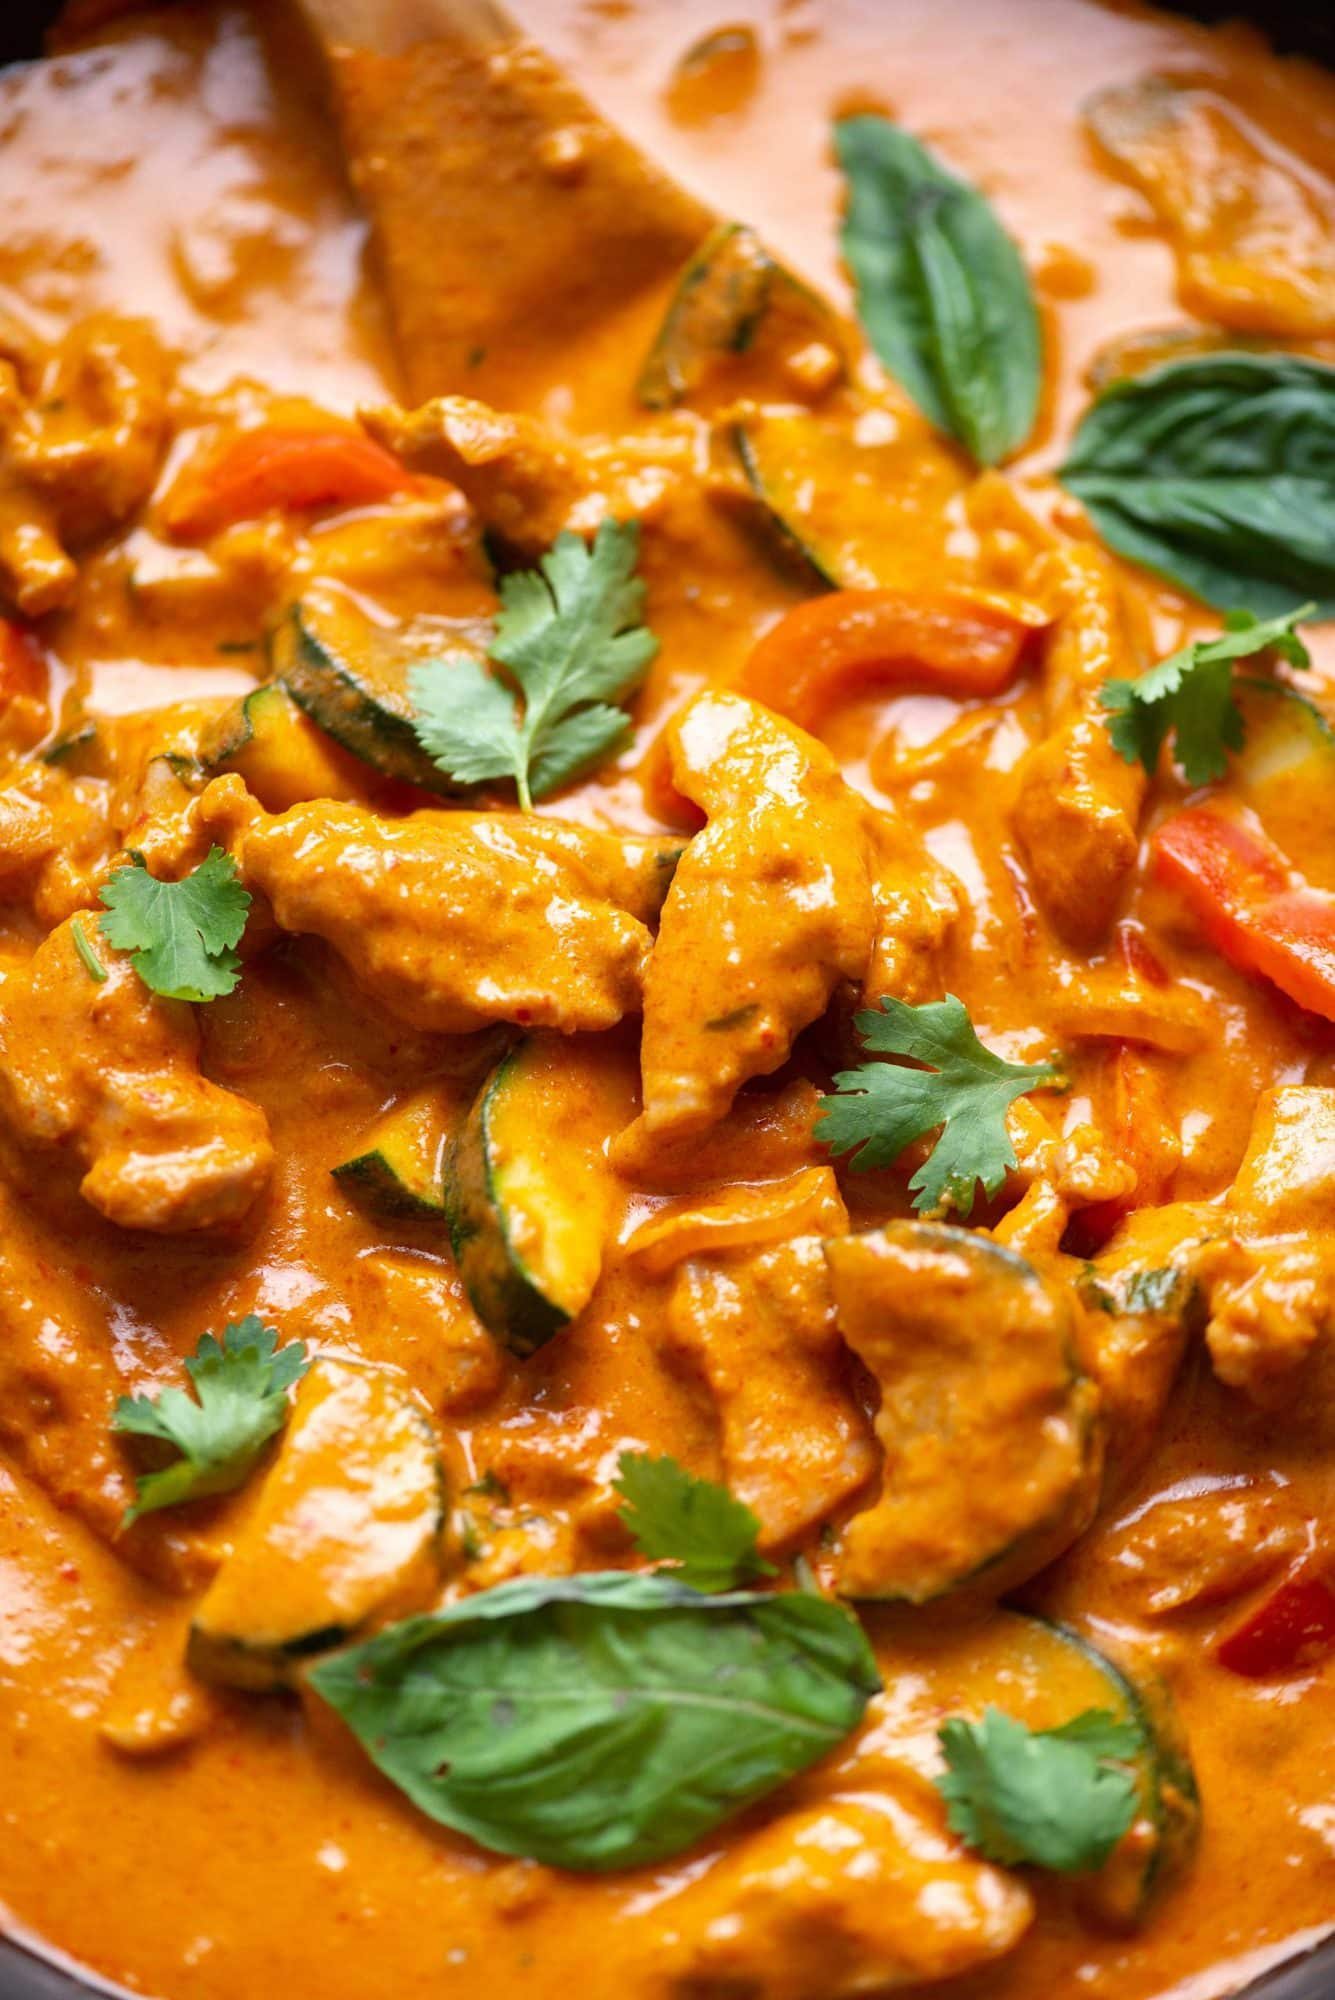 Rich and creamy Thai red Curry have chicken and vegetables. It is packed with fresh flavours and you need just 30 minutes to make it. It tastes amazing when served with Jasmin rice.